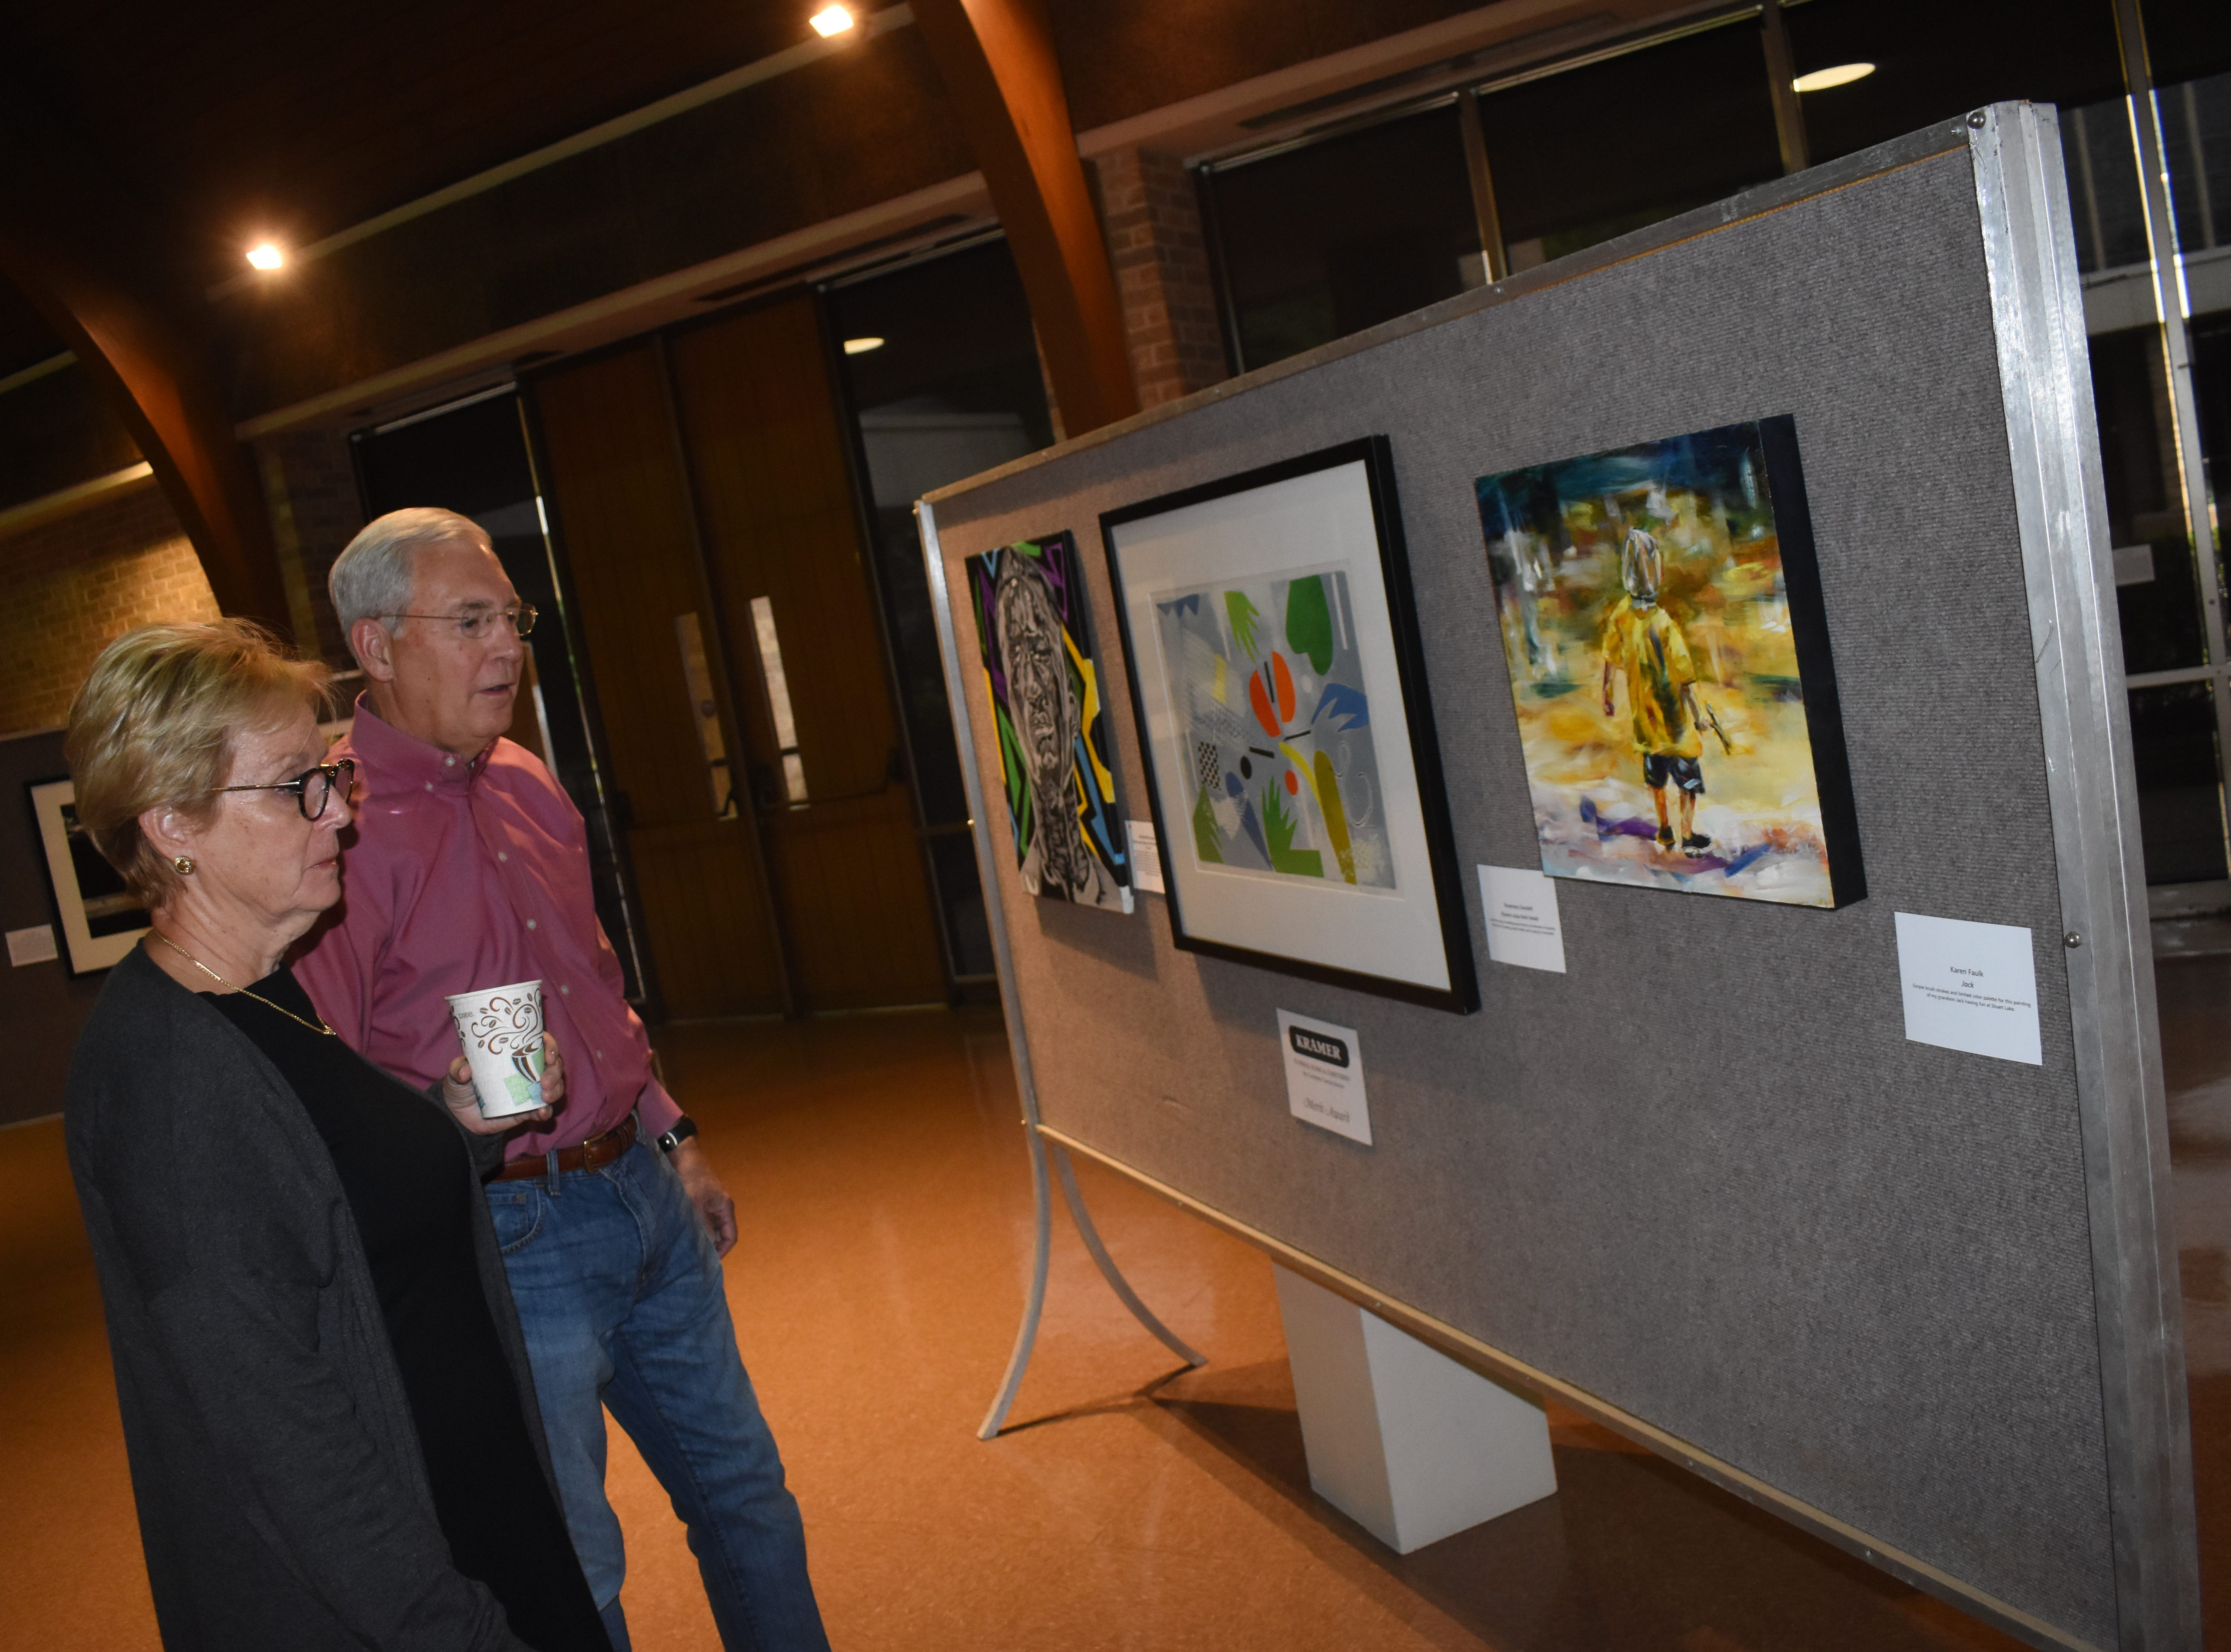 Smithfield Fair performed at Jazz on Jackson held Friday, May 10, 2019 at First United Methodist Church Alexandria. Guests were invited to view the art chosen for the Tom Peyton Memorial Arts Festival. The exhibit will be on view until May 12.